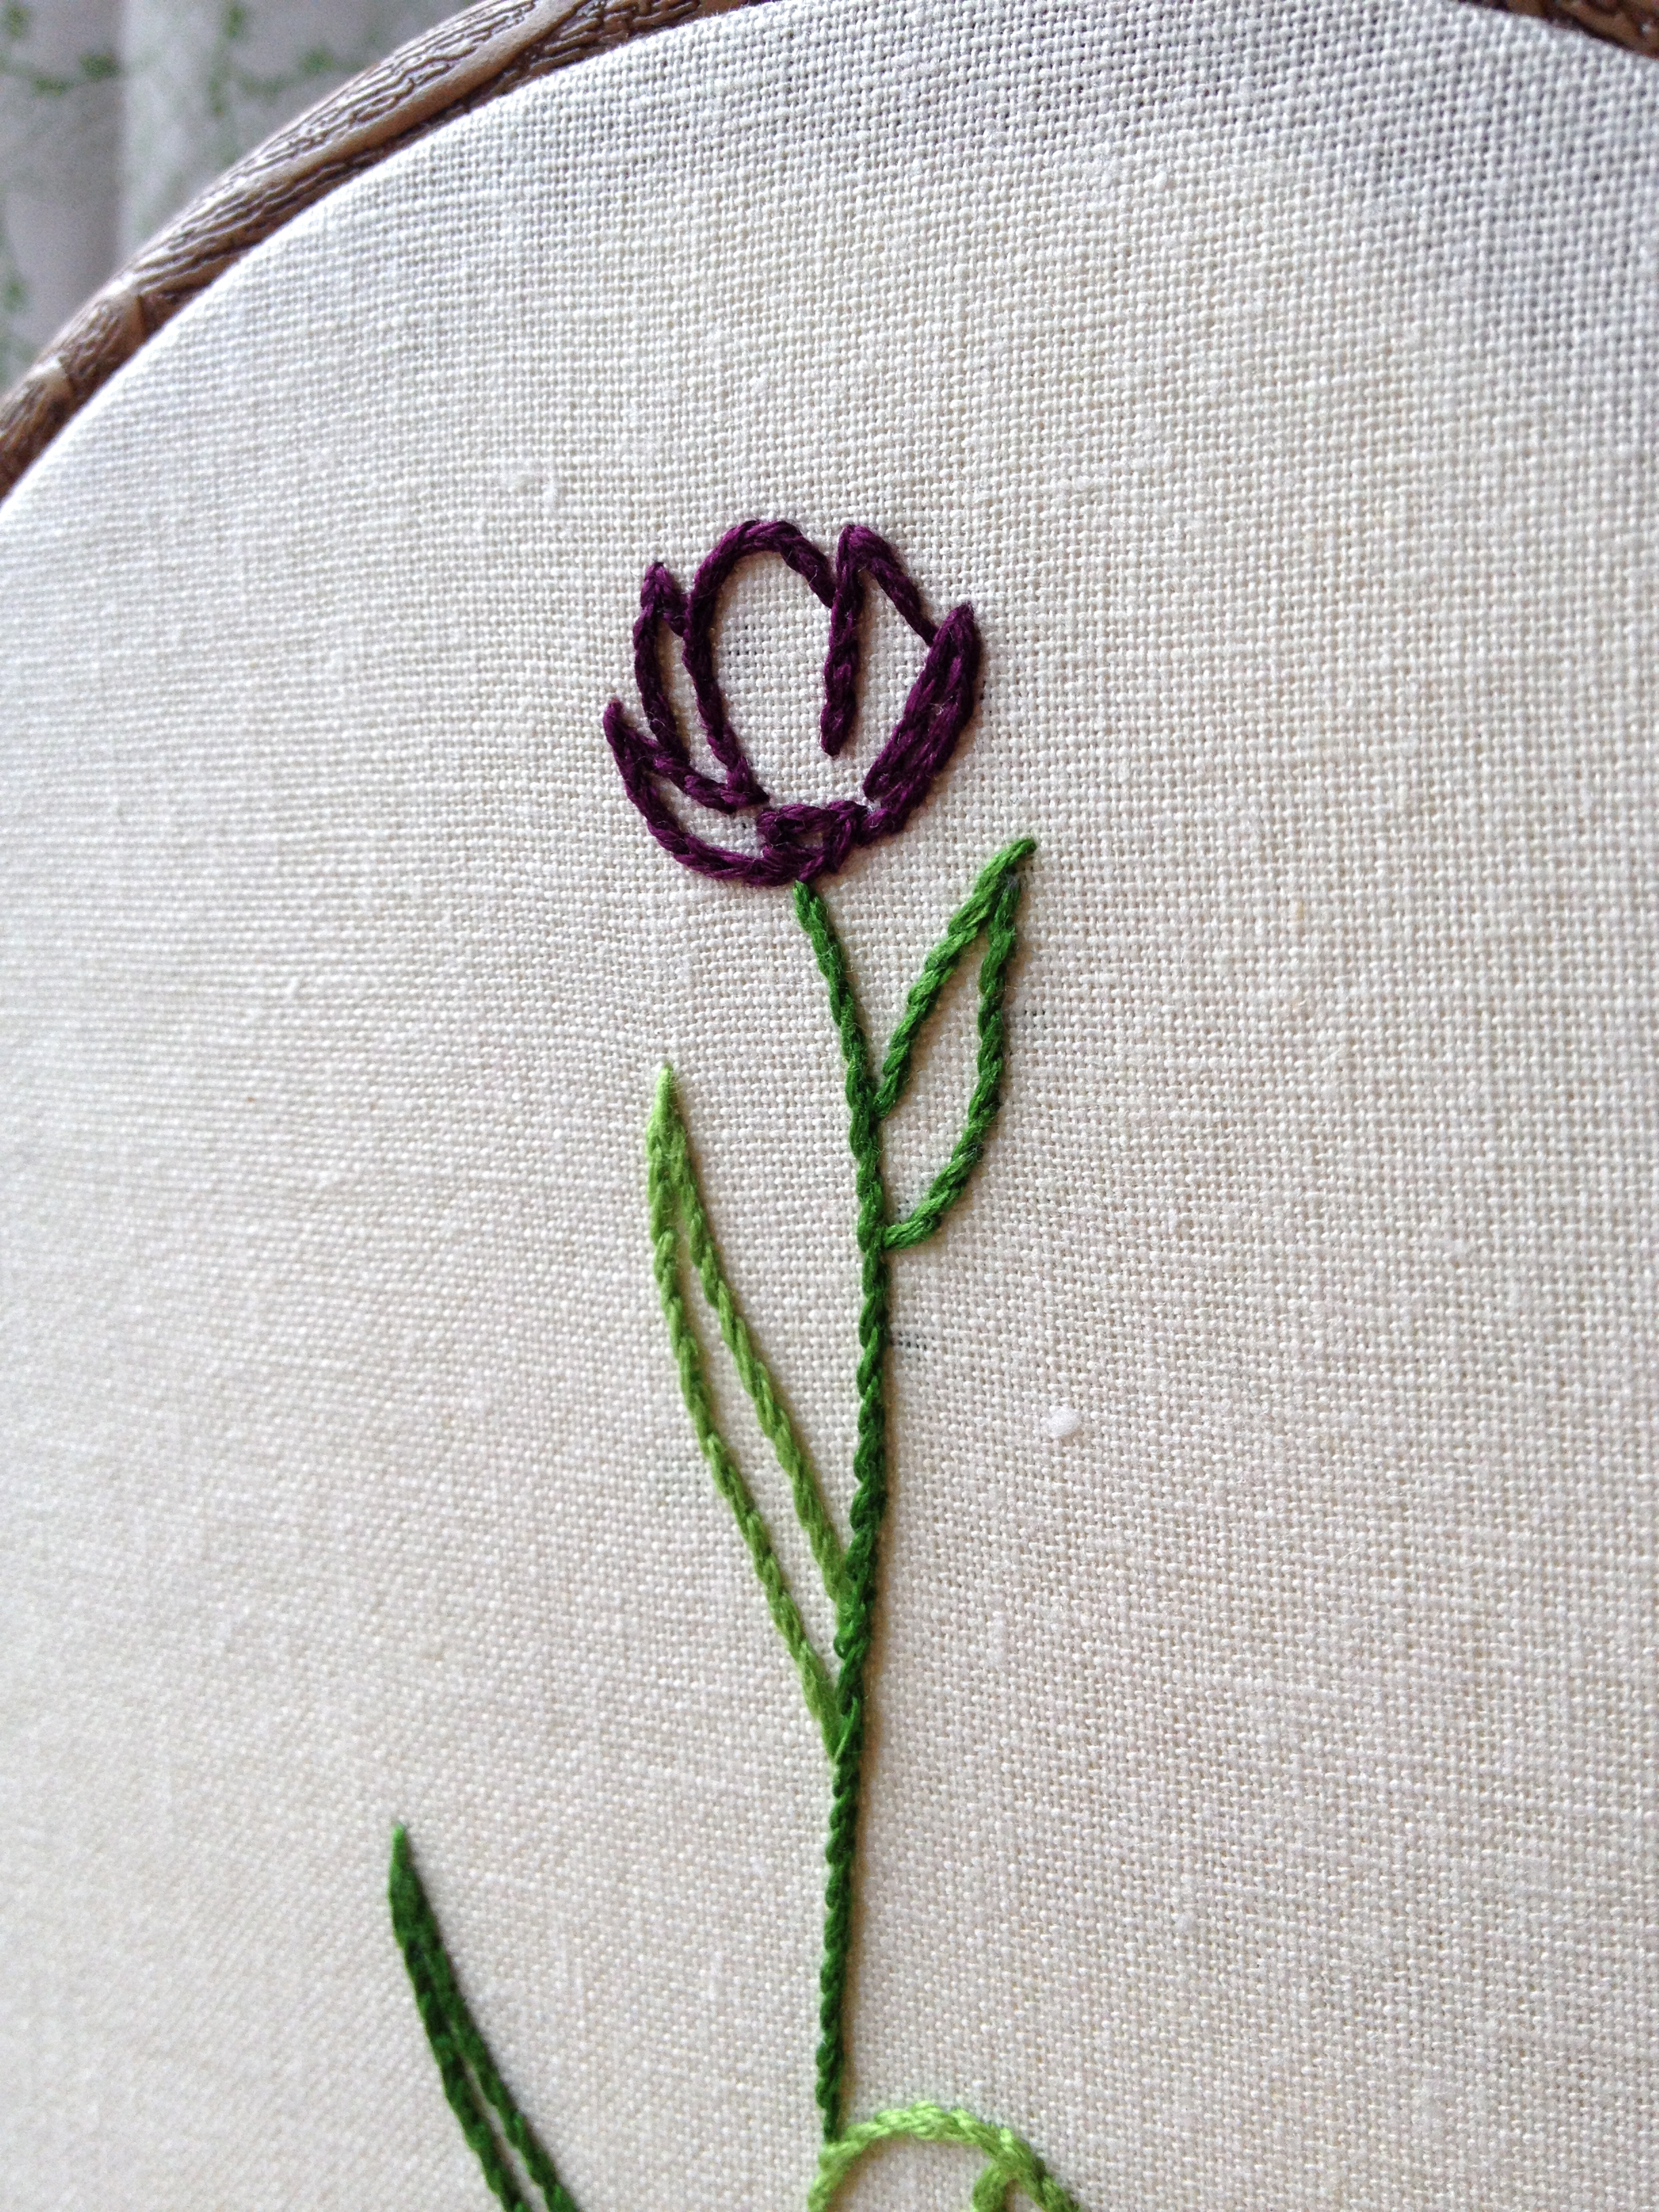 The Black Tulip Embroidery Patterns